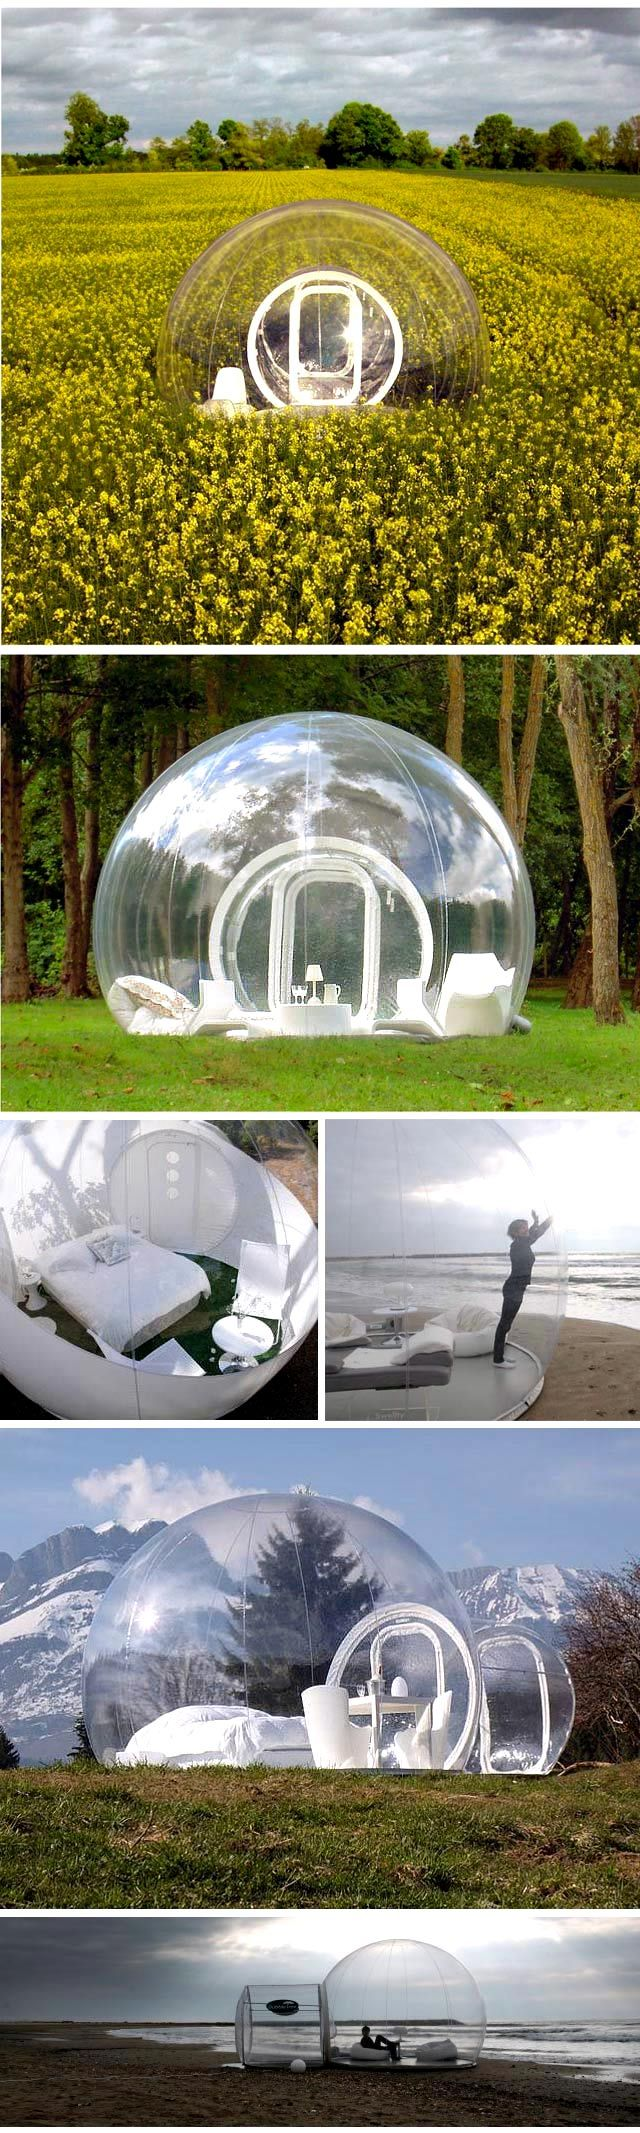 We love this Inflatable Bubble Tent! The luxury way to camp! - perfect for camping at festivals too - sometimes called an iGlu pod or a lunapod...x